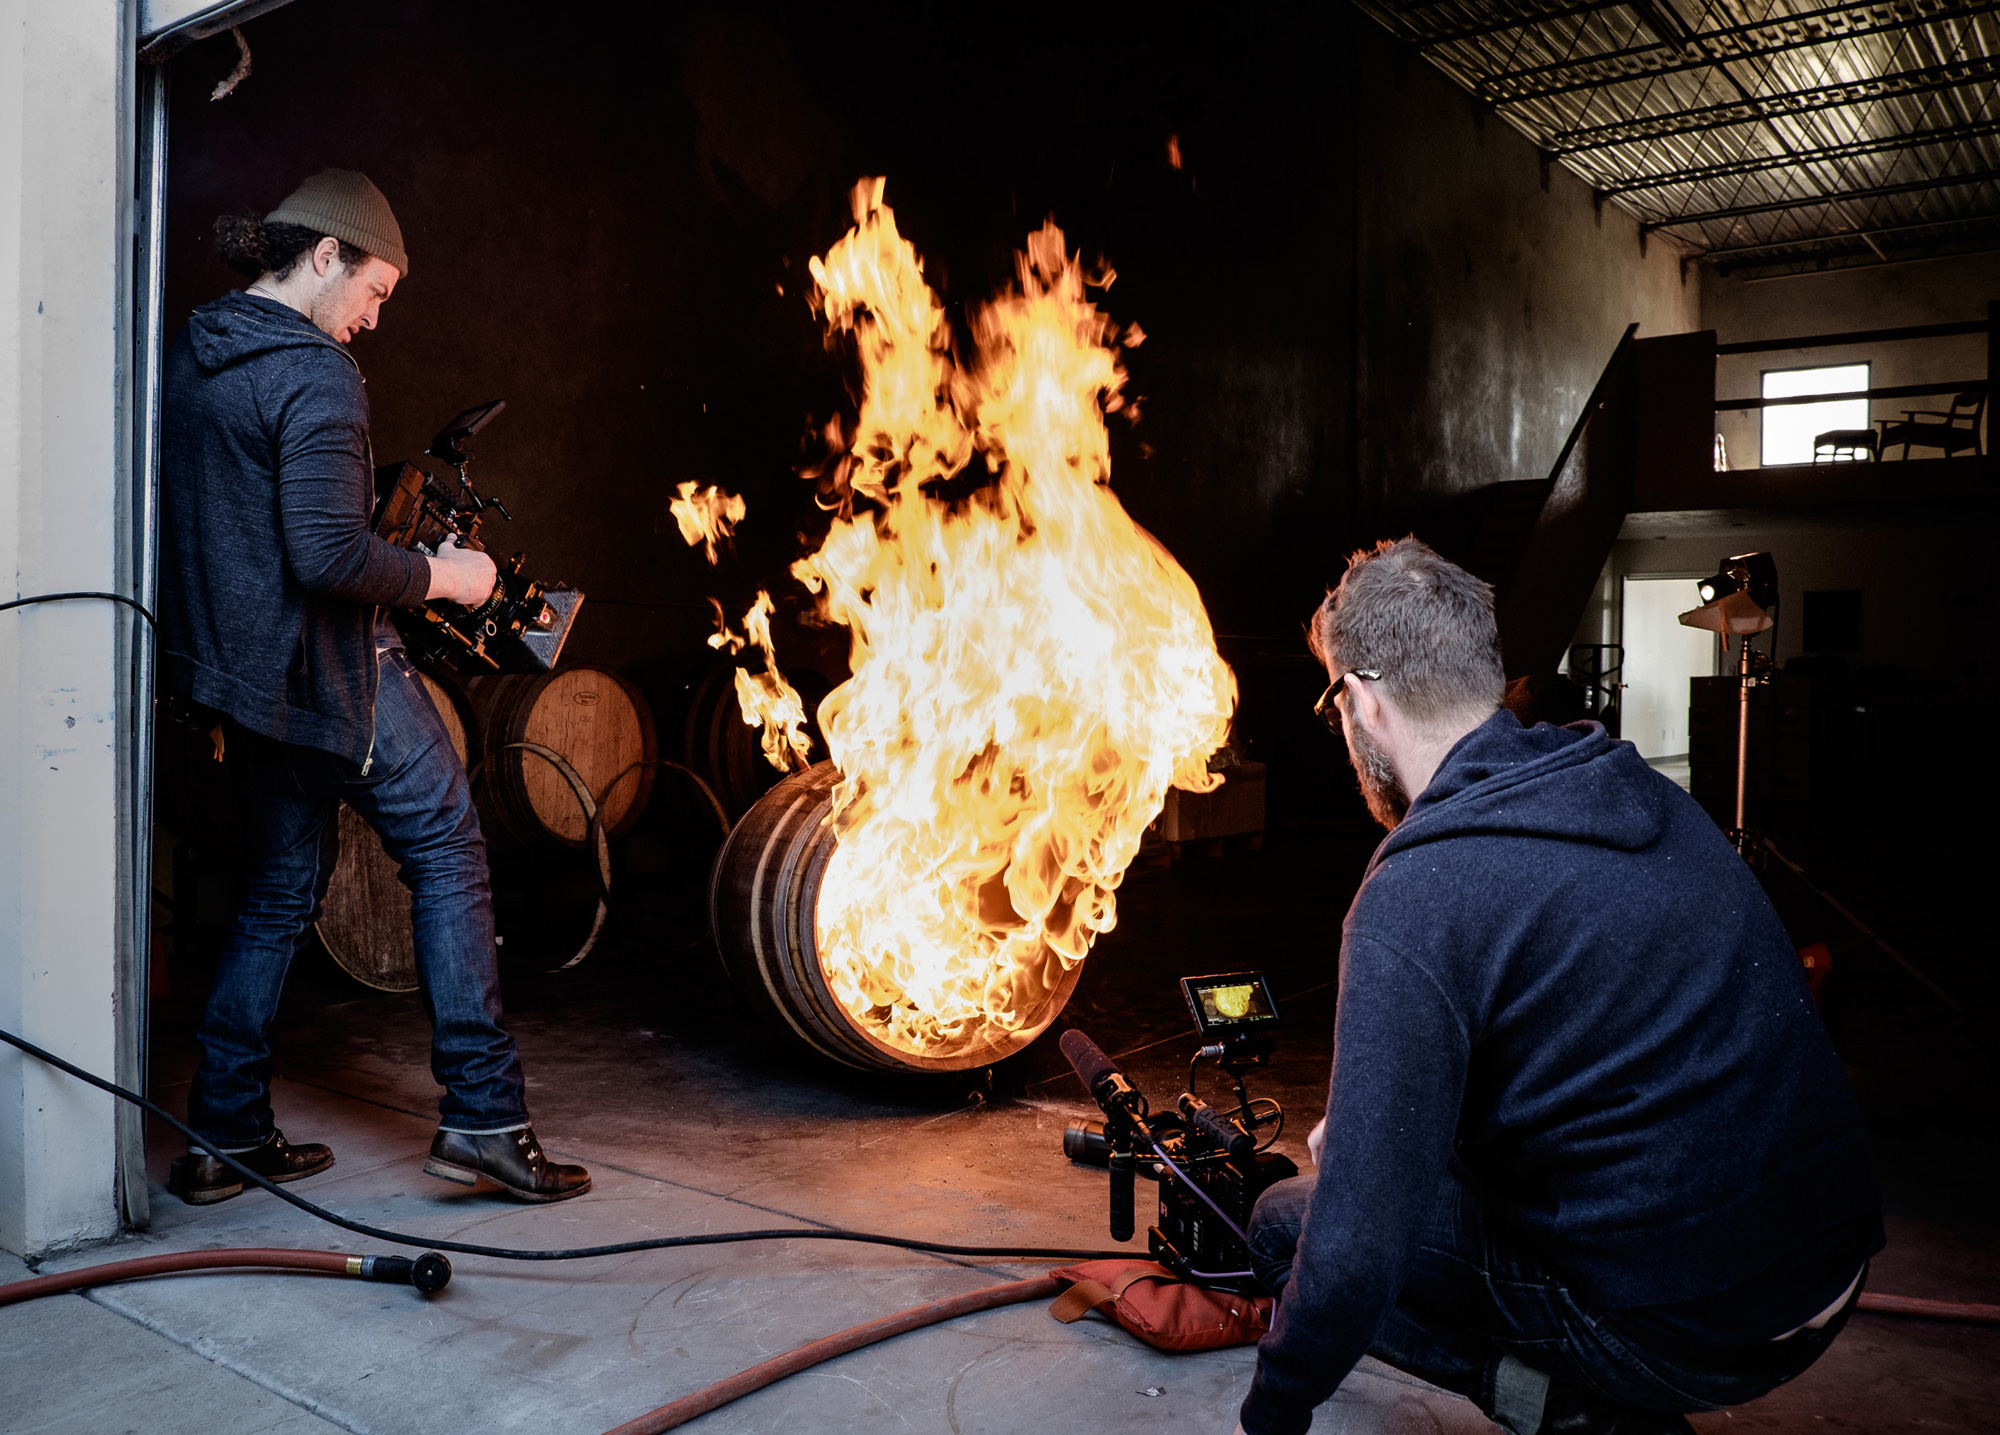 Beehive Distilling Small Batch Craft Gin Salt Lake City Utah 8